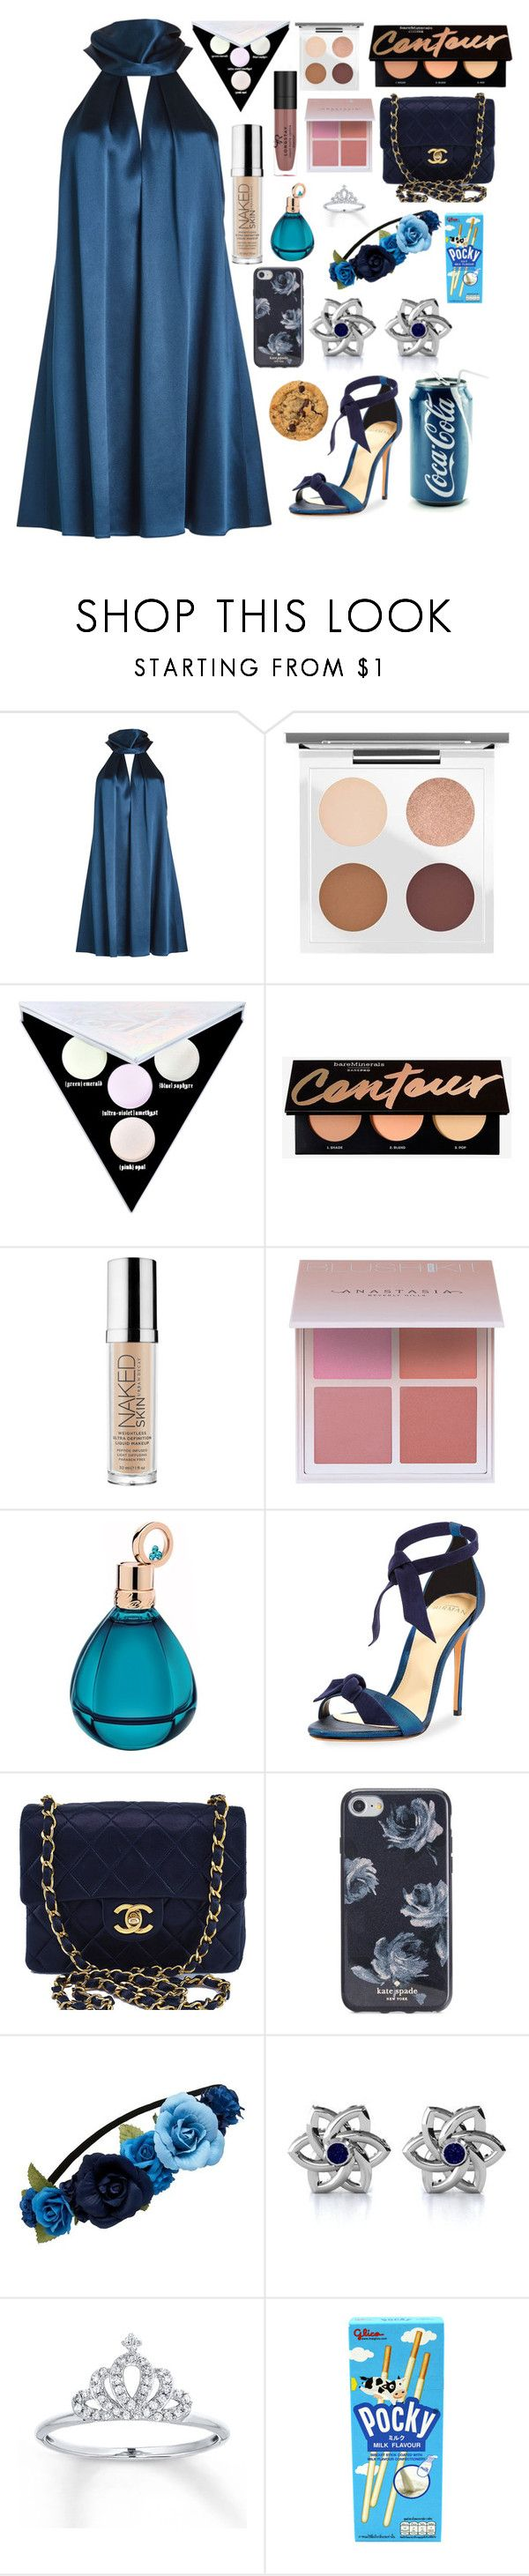 """""""Roadhouse Blues"""" by lucyheartyui ❤ liked on Polyvore featuring Galvan, MAC Cosmetics, Kat Von D, Urban Decay, Anastasia Beverly Hills, Chopard, Alexandre Birman, Chanel, Kate Spade and Forever New"""